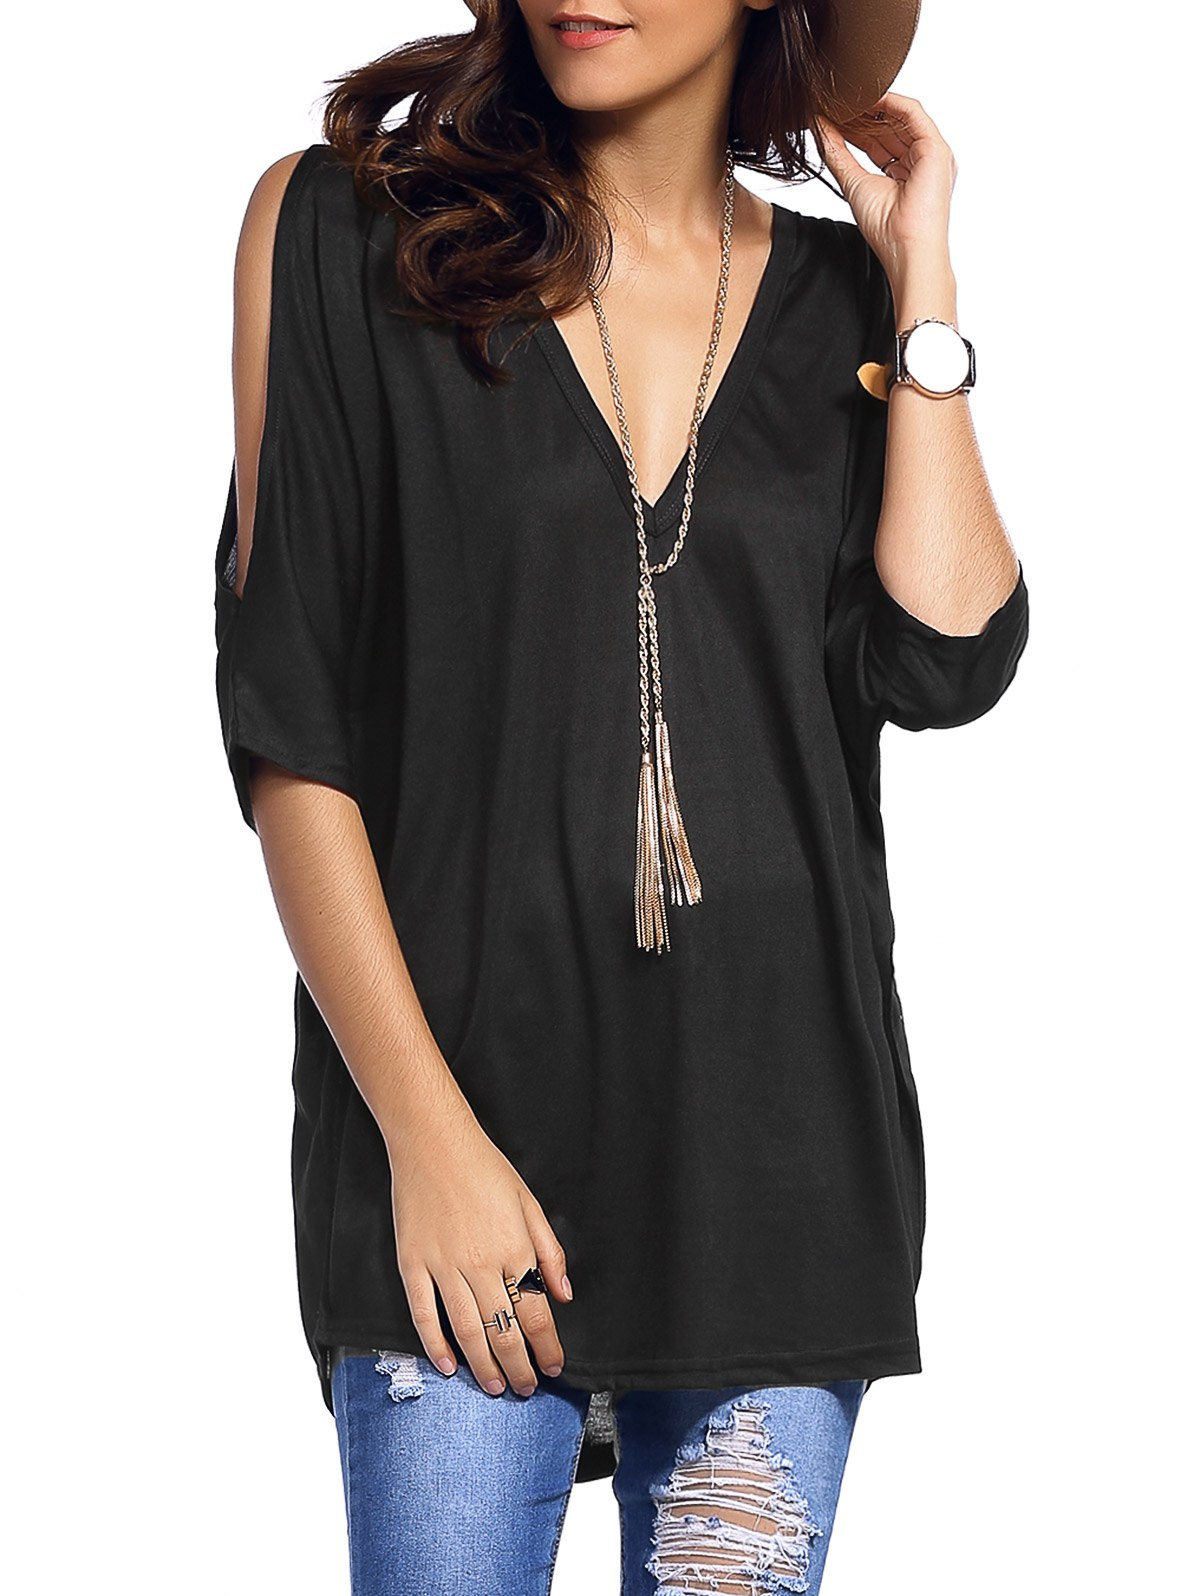 Low Cut Cold Shoulder Asymmetrical T-Shirt